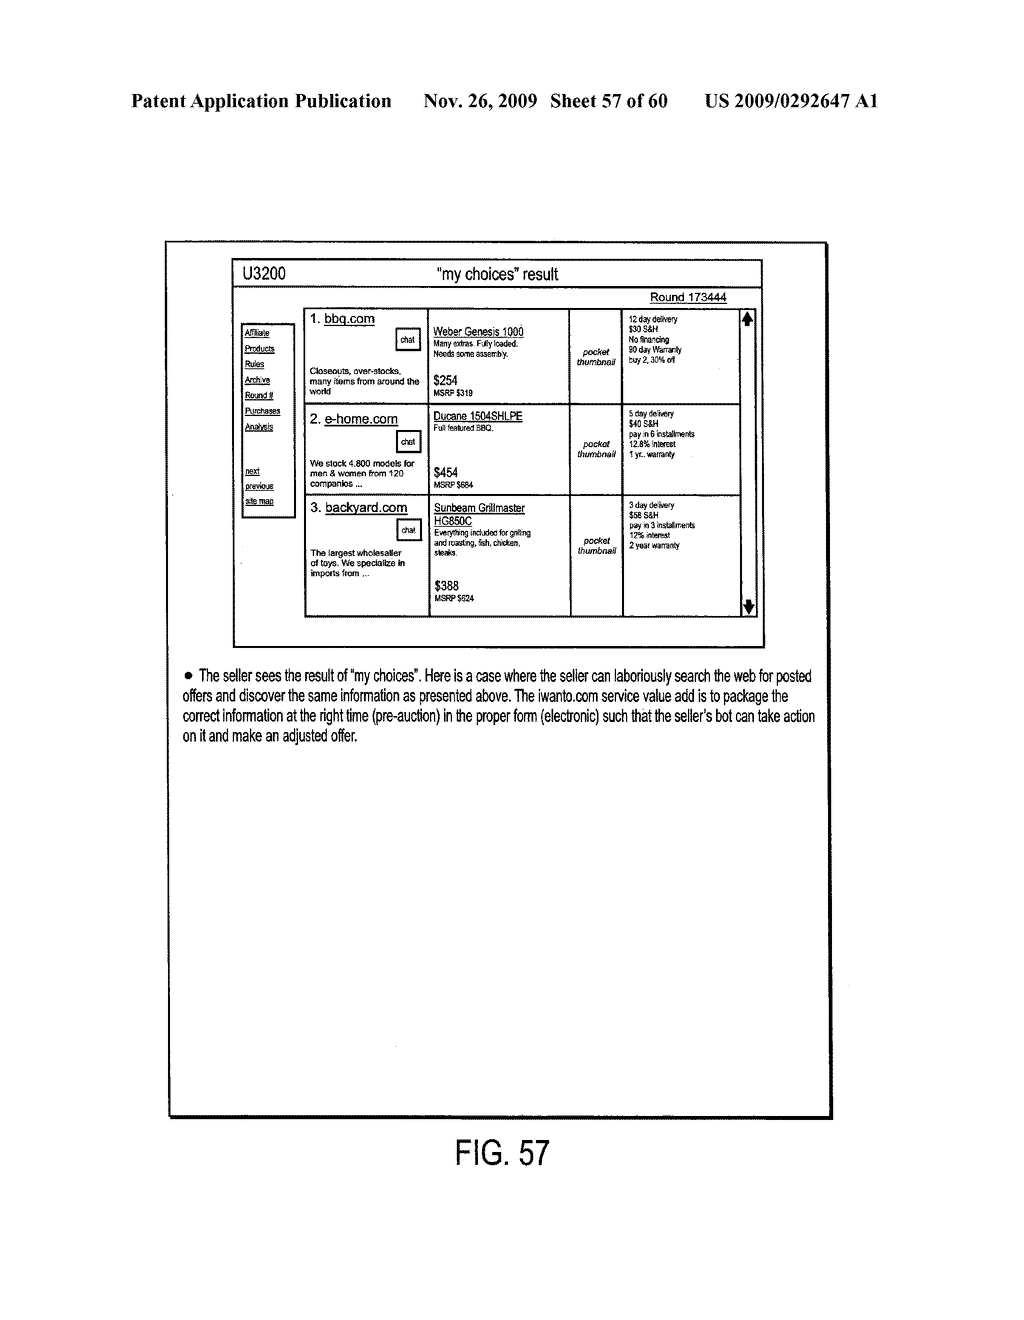 METHOD, SYSTEM AND BUSINESS MODEL FOR A BUYER'S AUCTION WITH NEAR PERFECT INFORMATION USING THE INTERNET - diagram, schematic, and image 58